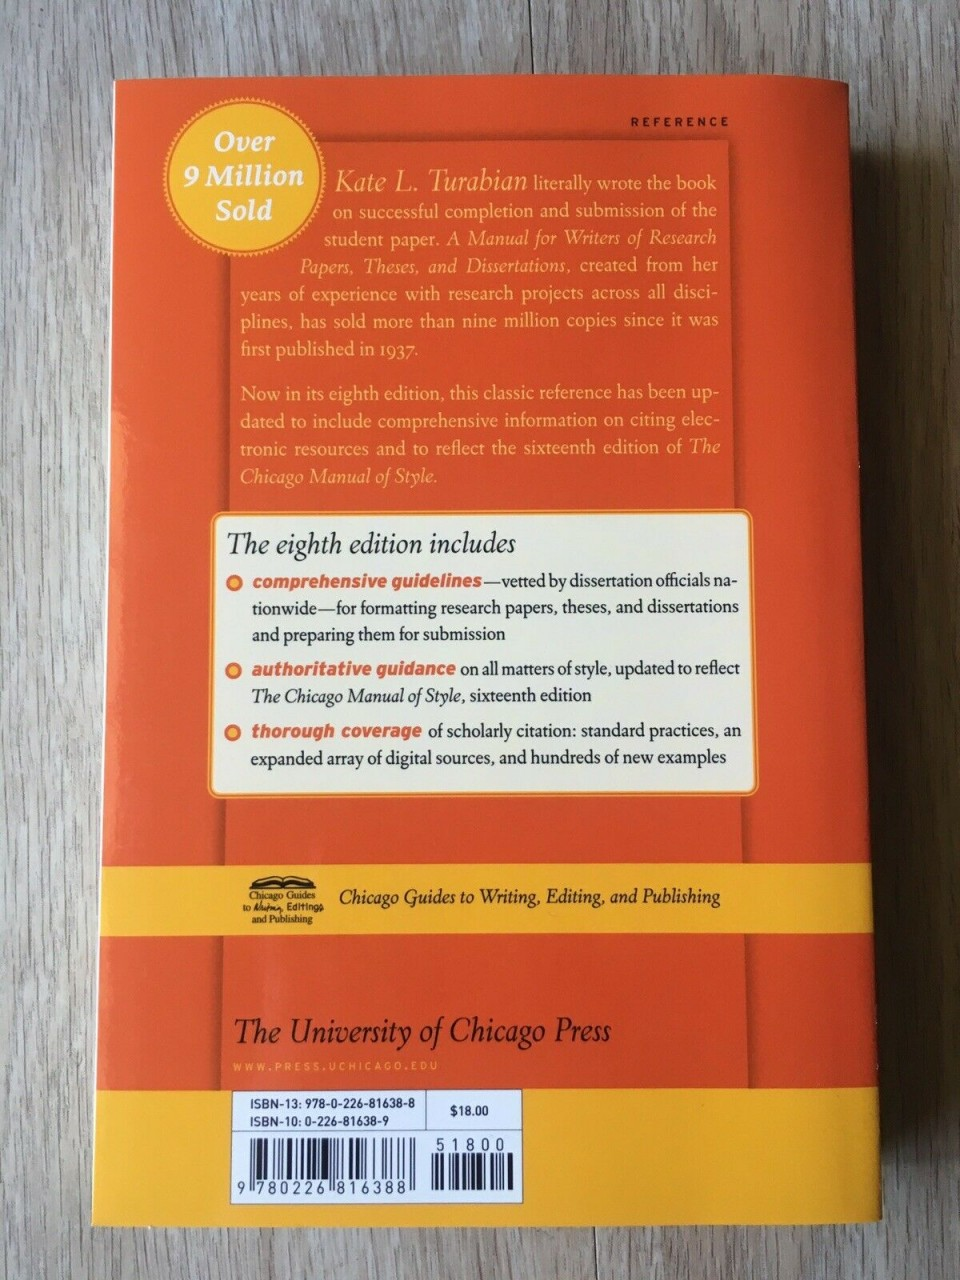 011 Research Paper Manual For Writers Of Papers Theses And Dissertations S Sensational A Ed. 8 8th Edition Ninth Pdf 960